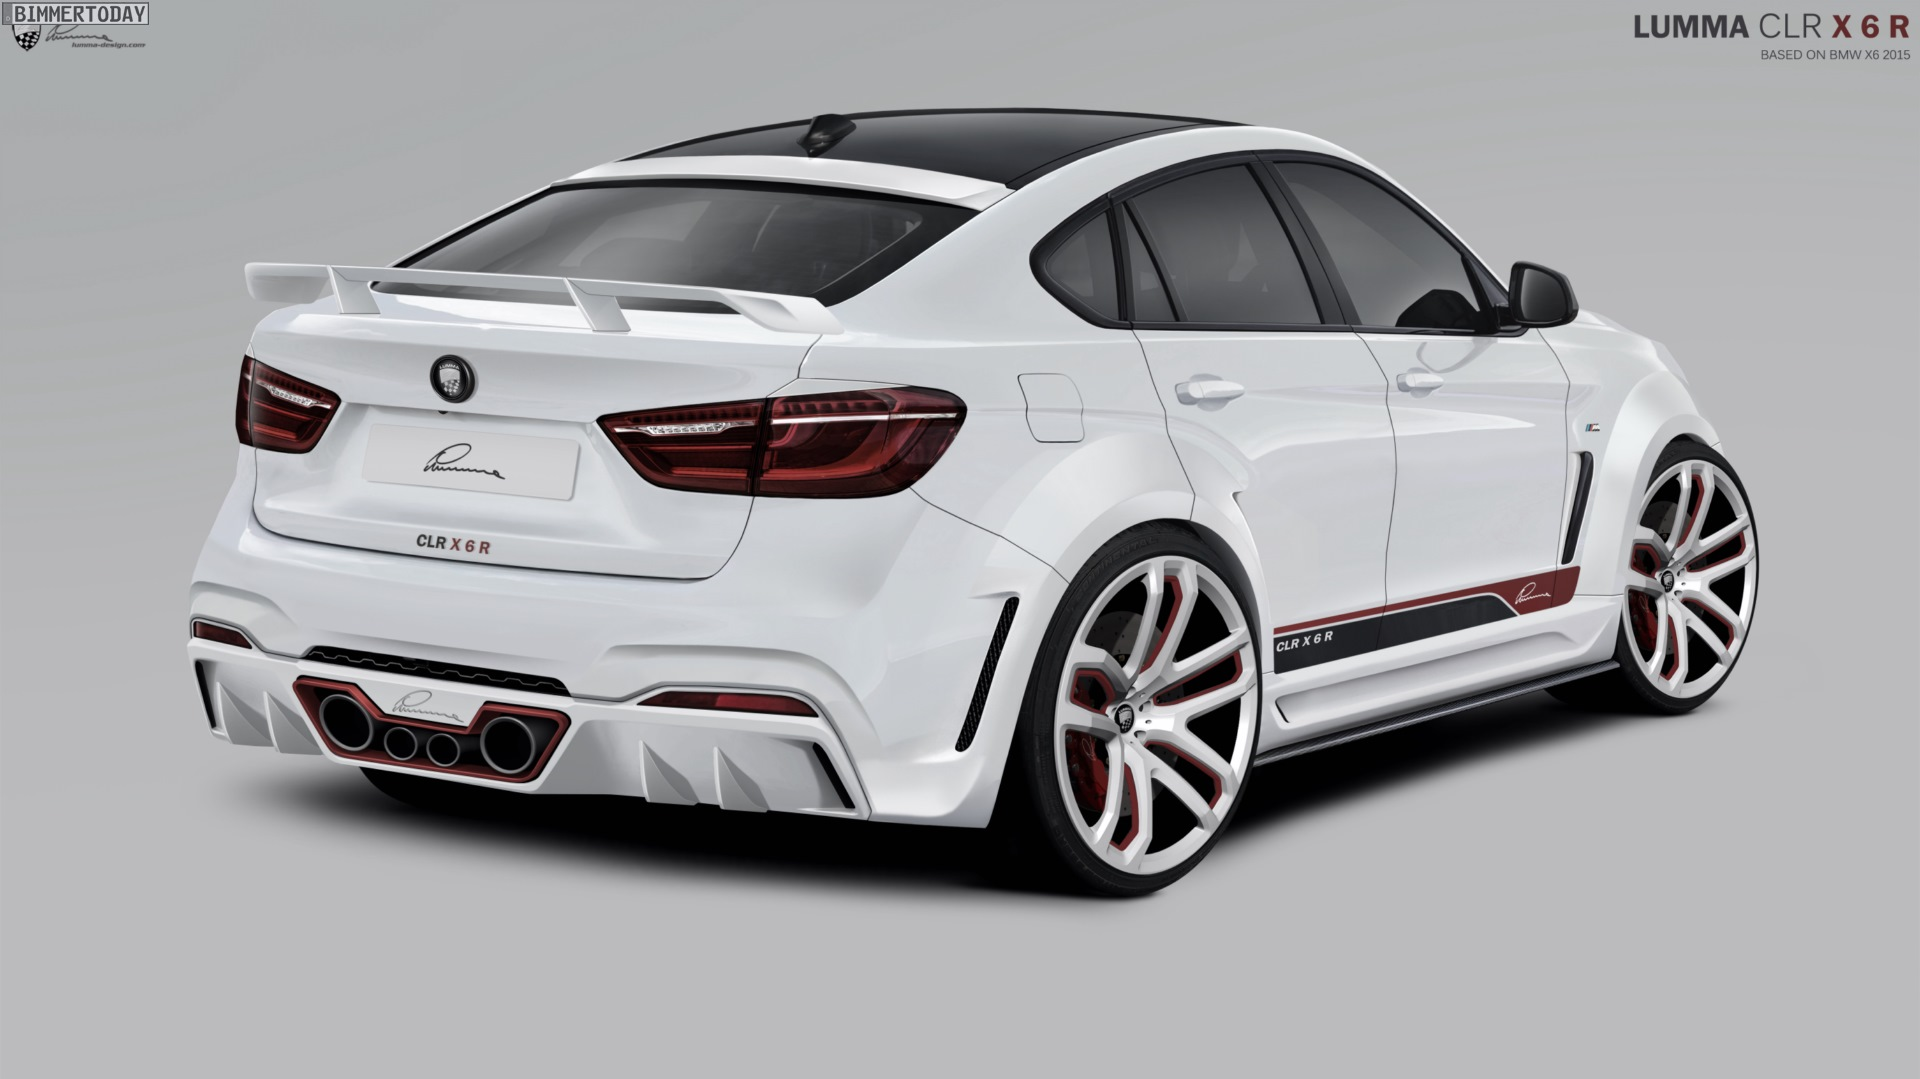 Lumma Clr X 6 R Bmw X6 F16 Mit Virtuellem Widebody Tuning